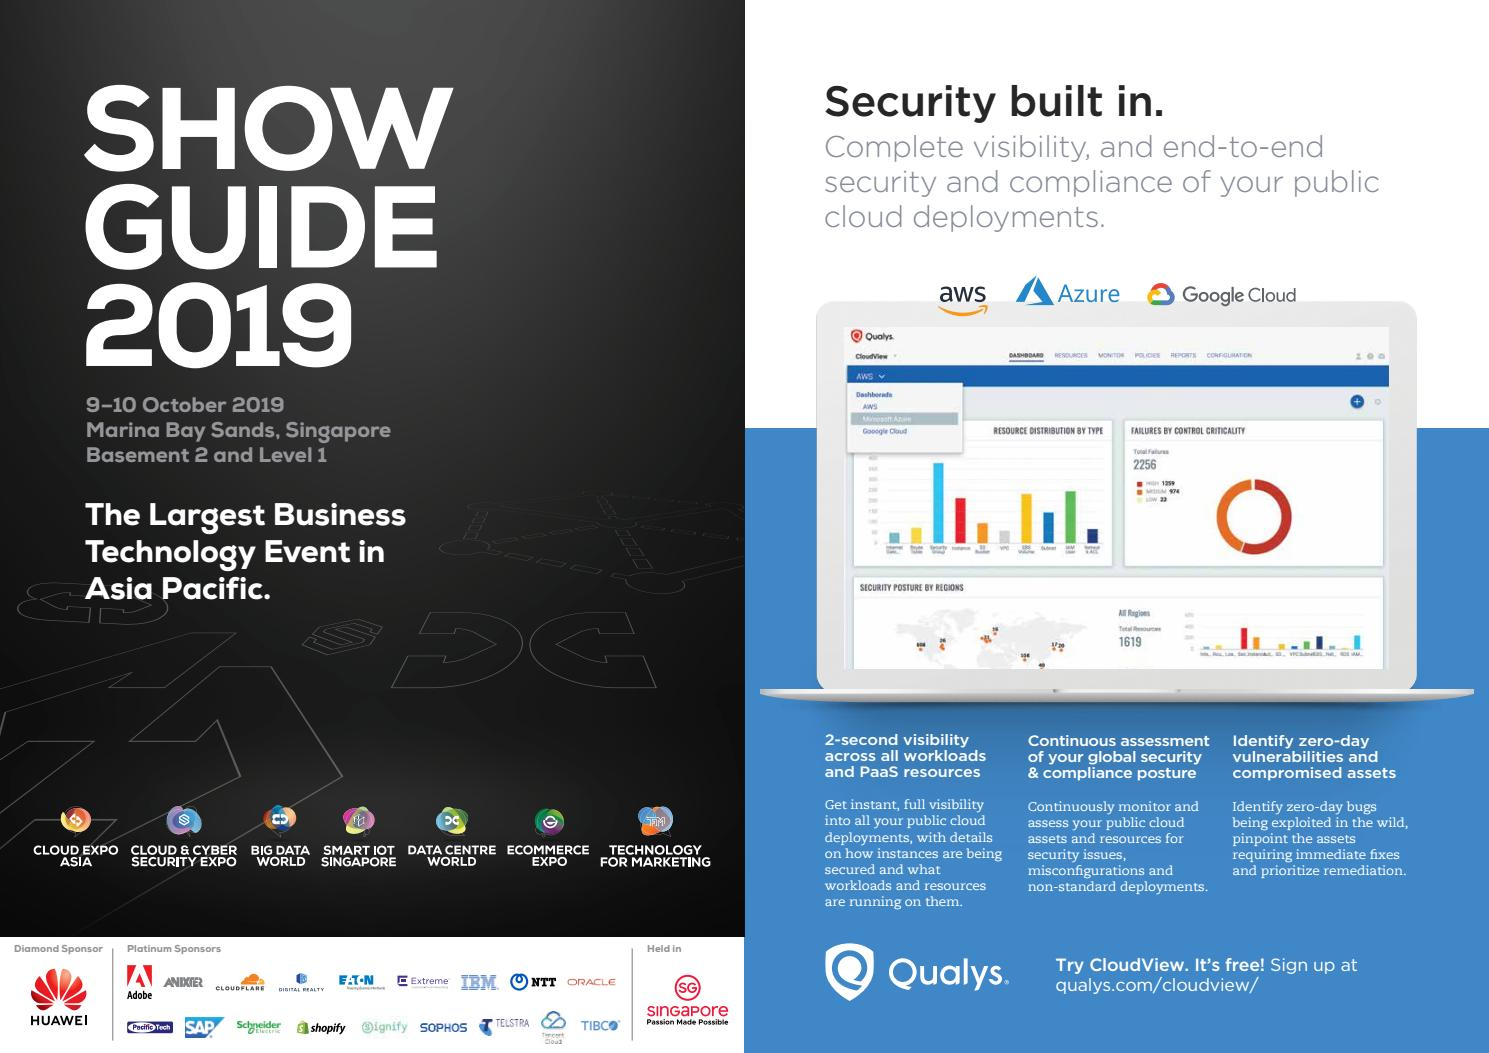 Cloud Expo Asia Show Guide 2019 by Cloud Expo Asia - issuu